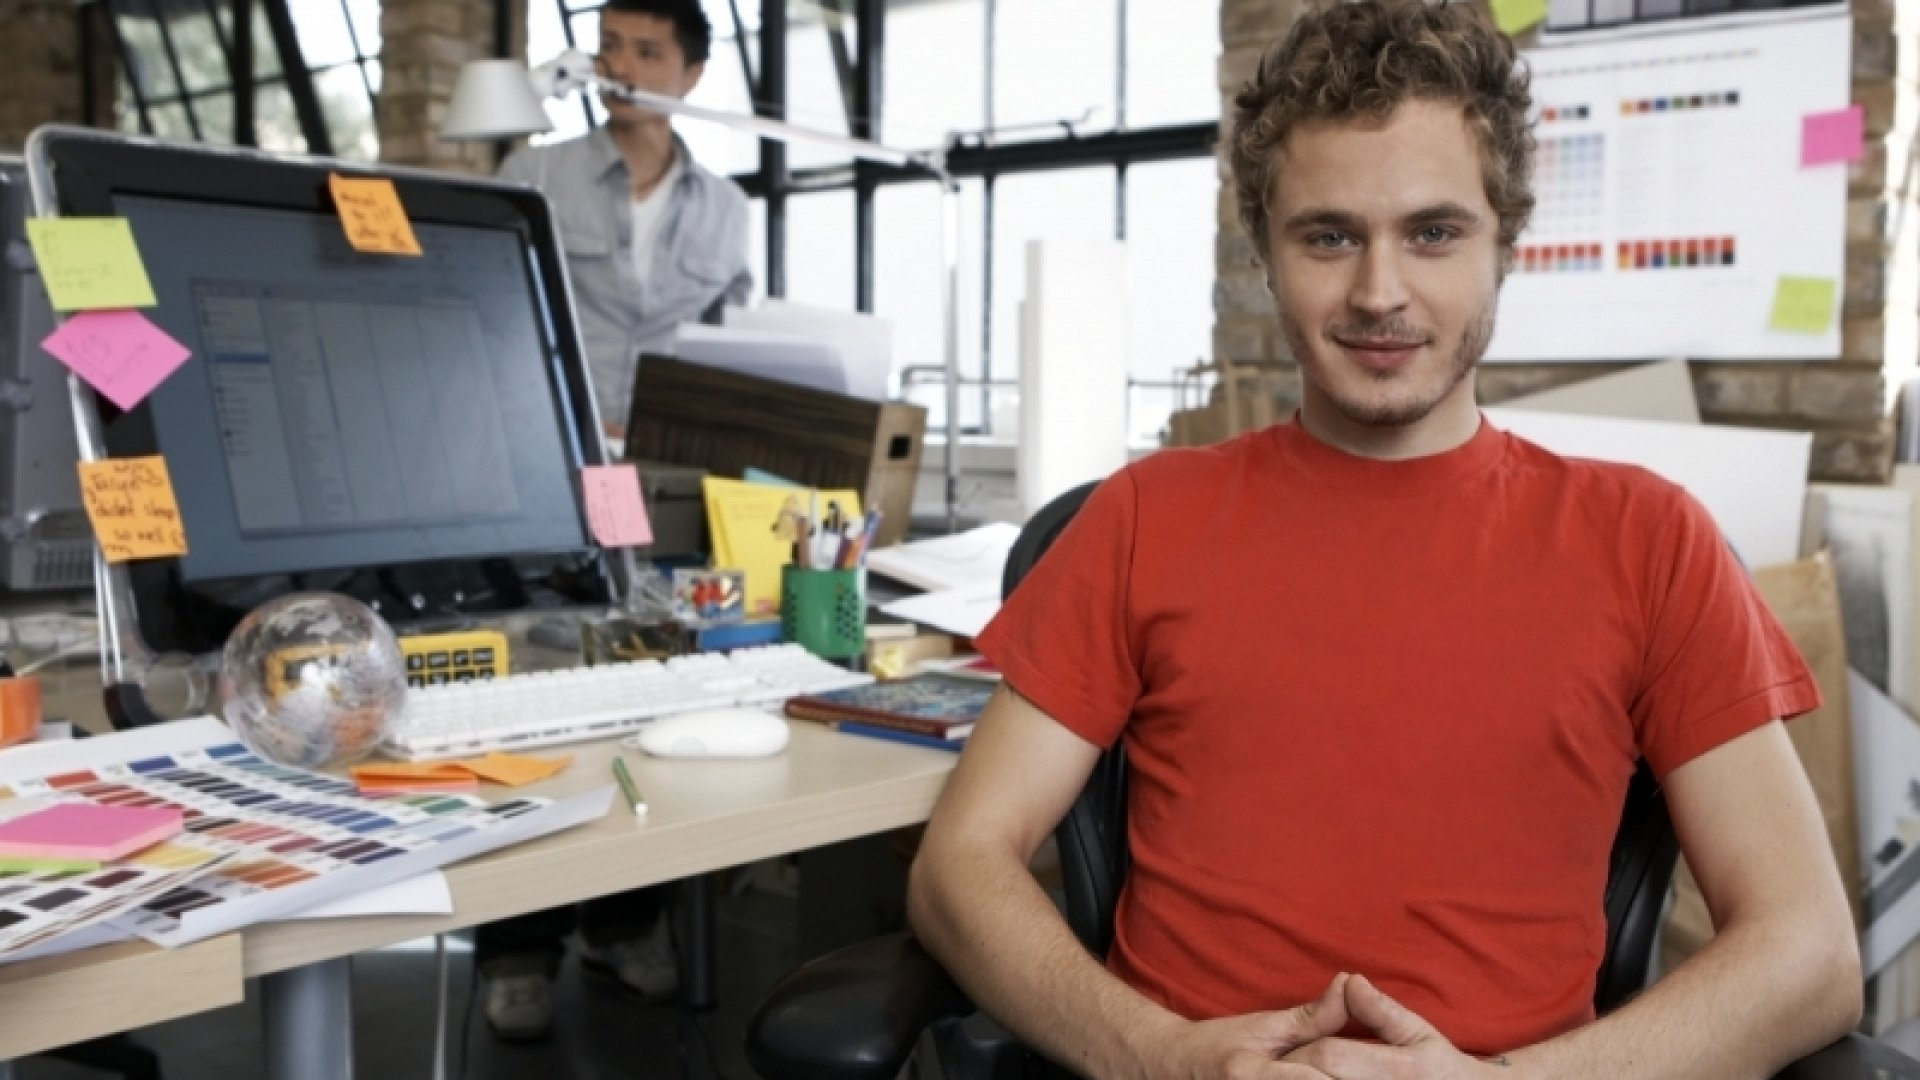 4 Truths About Managing Younger Workers